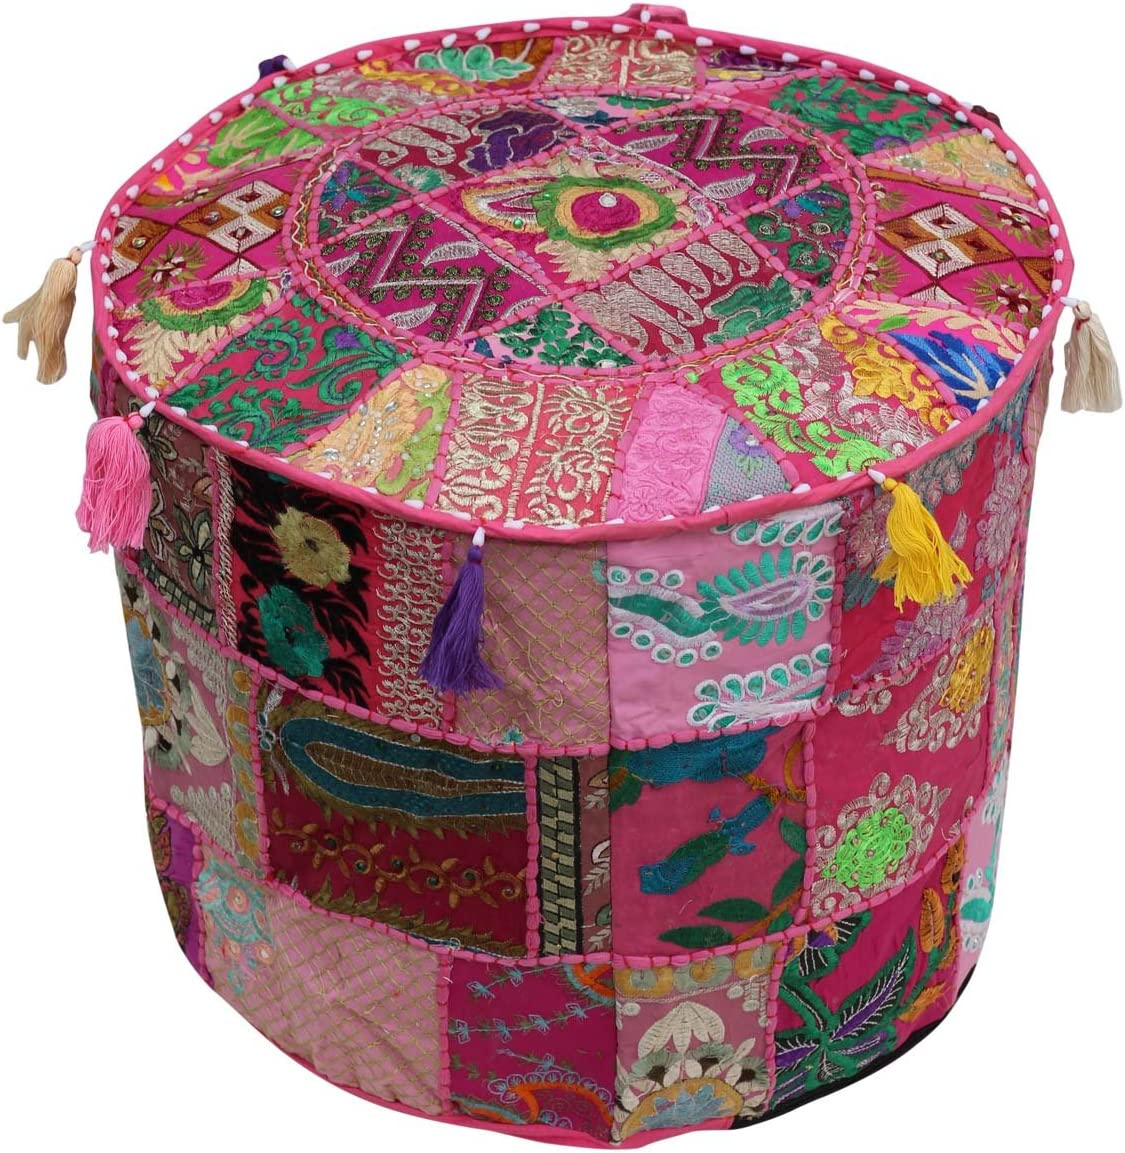 Southwest Decor Pouf – Moroccan Stool Pouf Ottoman 18.5 x 14 Inch Bohemian Traditional Vintage Foot Pouf Cover – Handmade Cotton Fabric – Patchwork on Pink Base